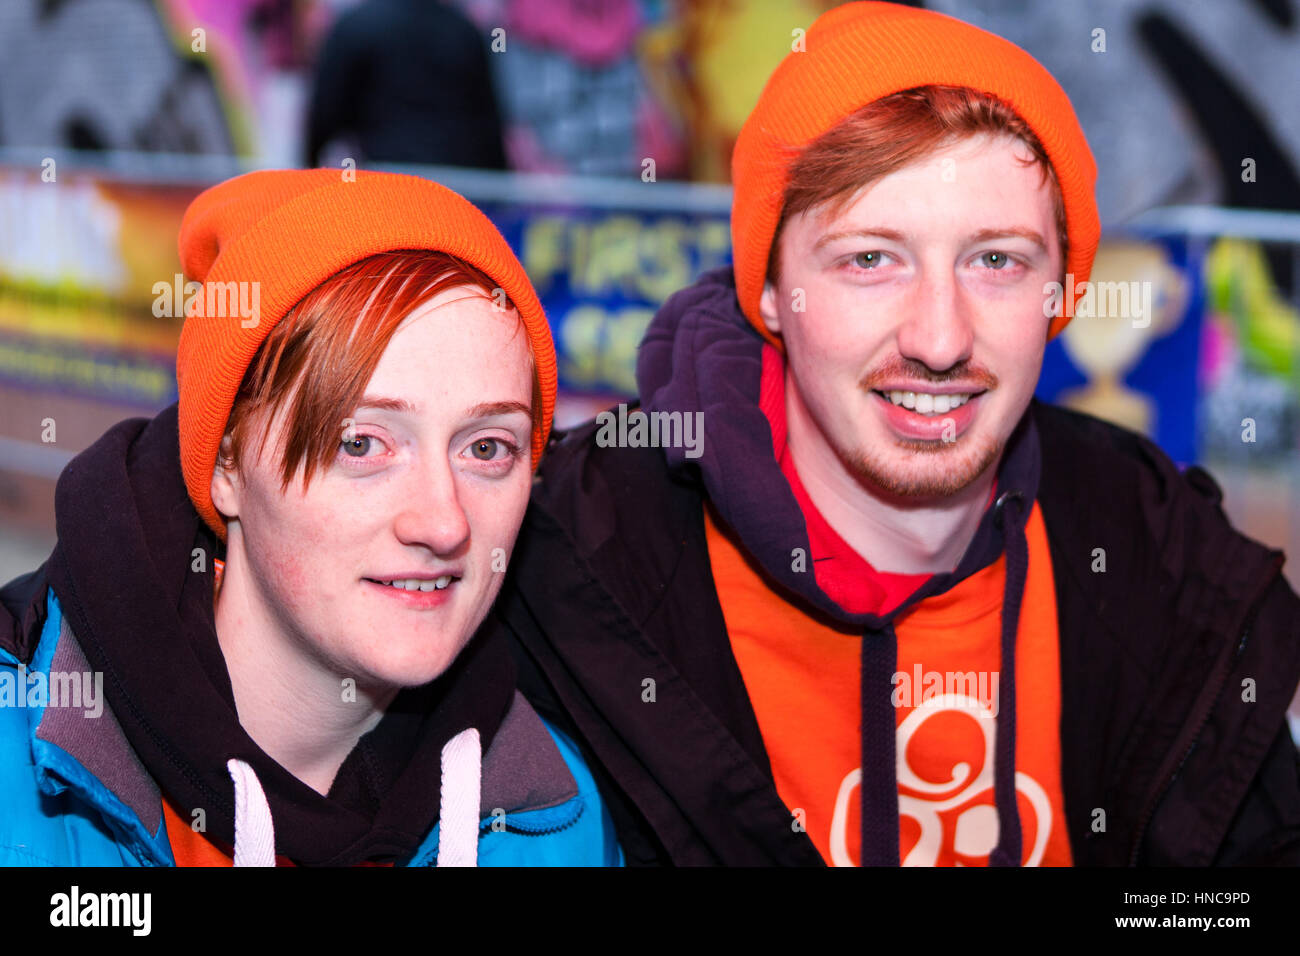 Belfast, UK. 11th Feb, 2017. Belfast 11th Frbruary 2017. Ginger haired people gathered in belfast to take part in - Stock Image